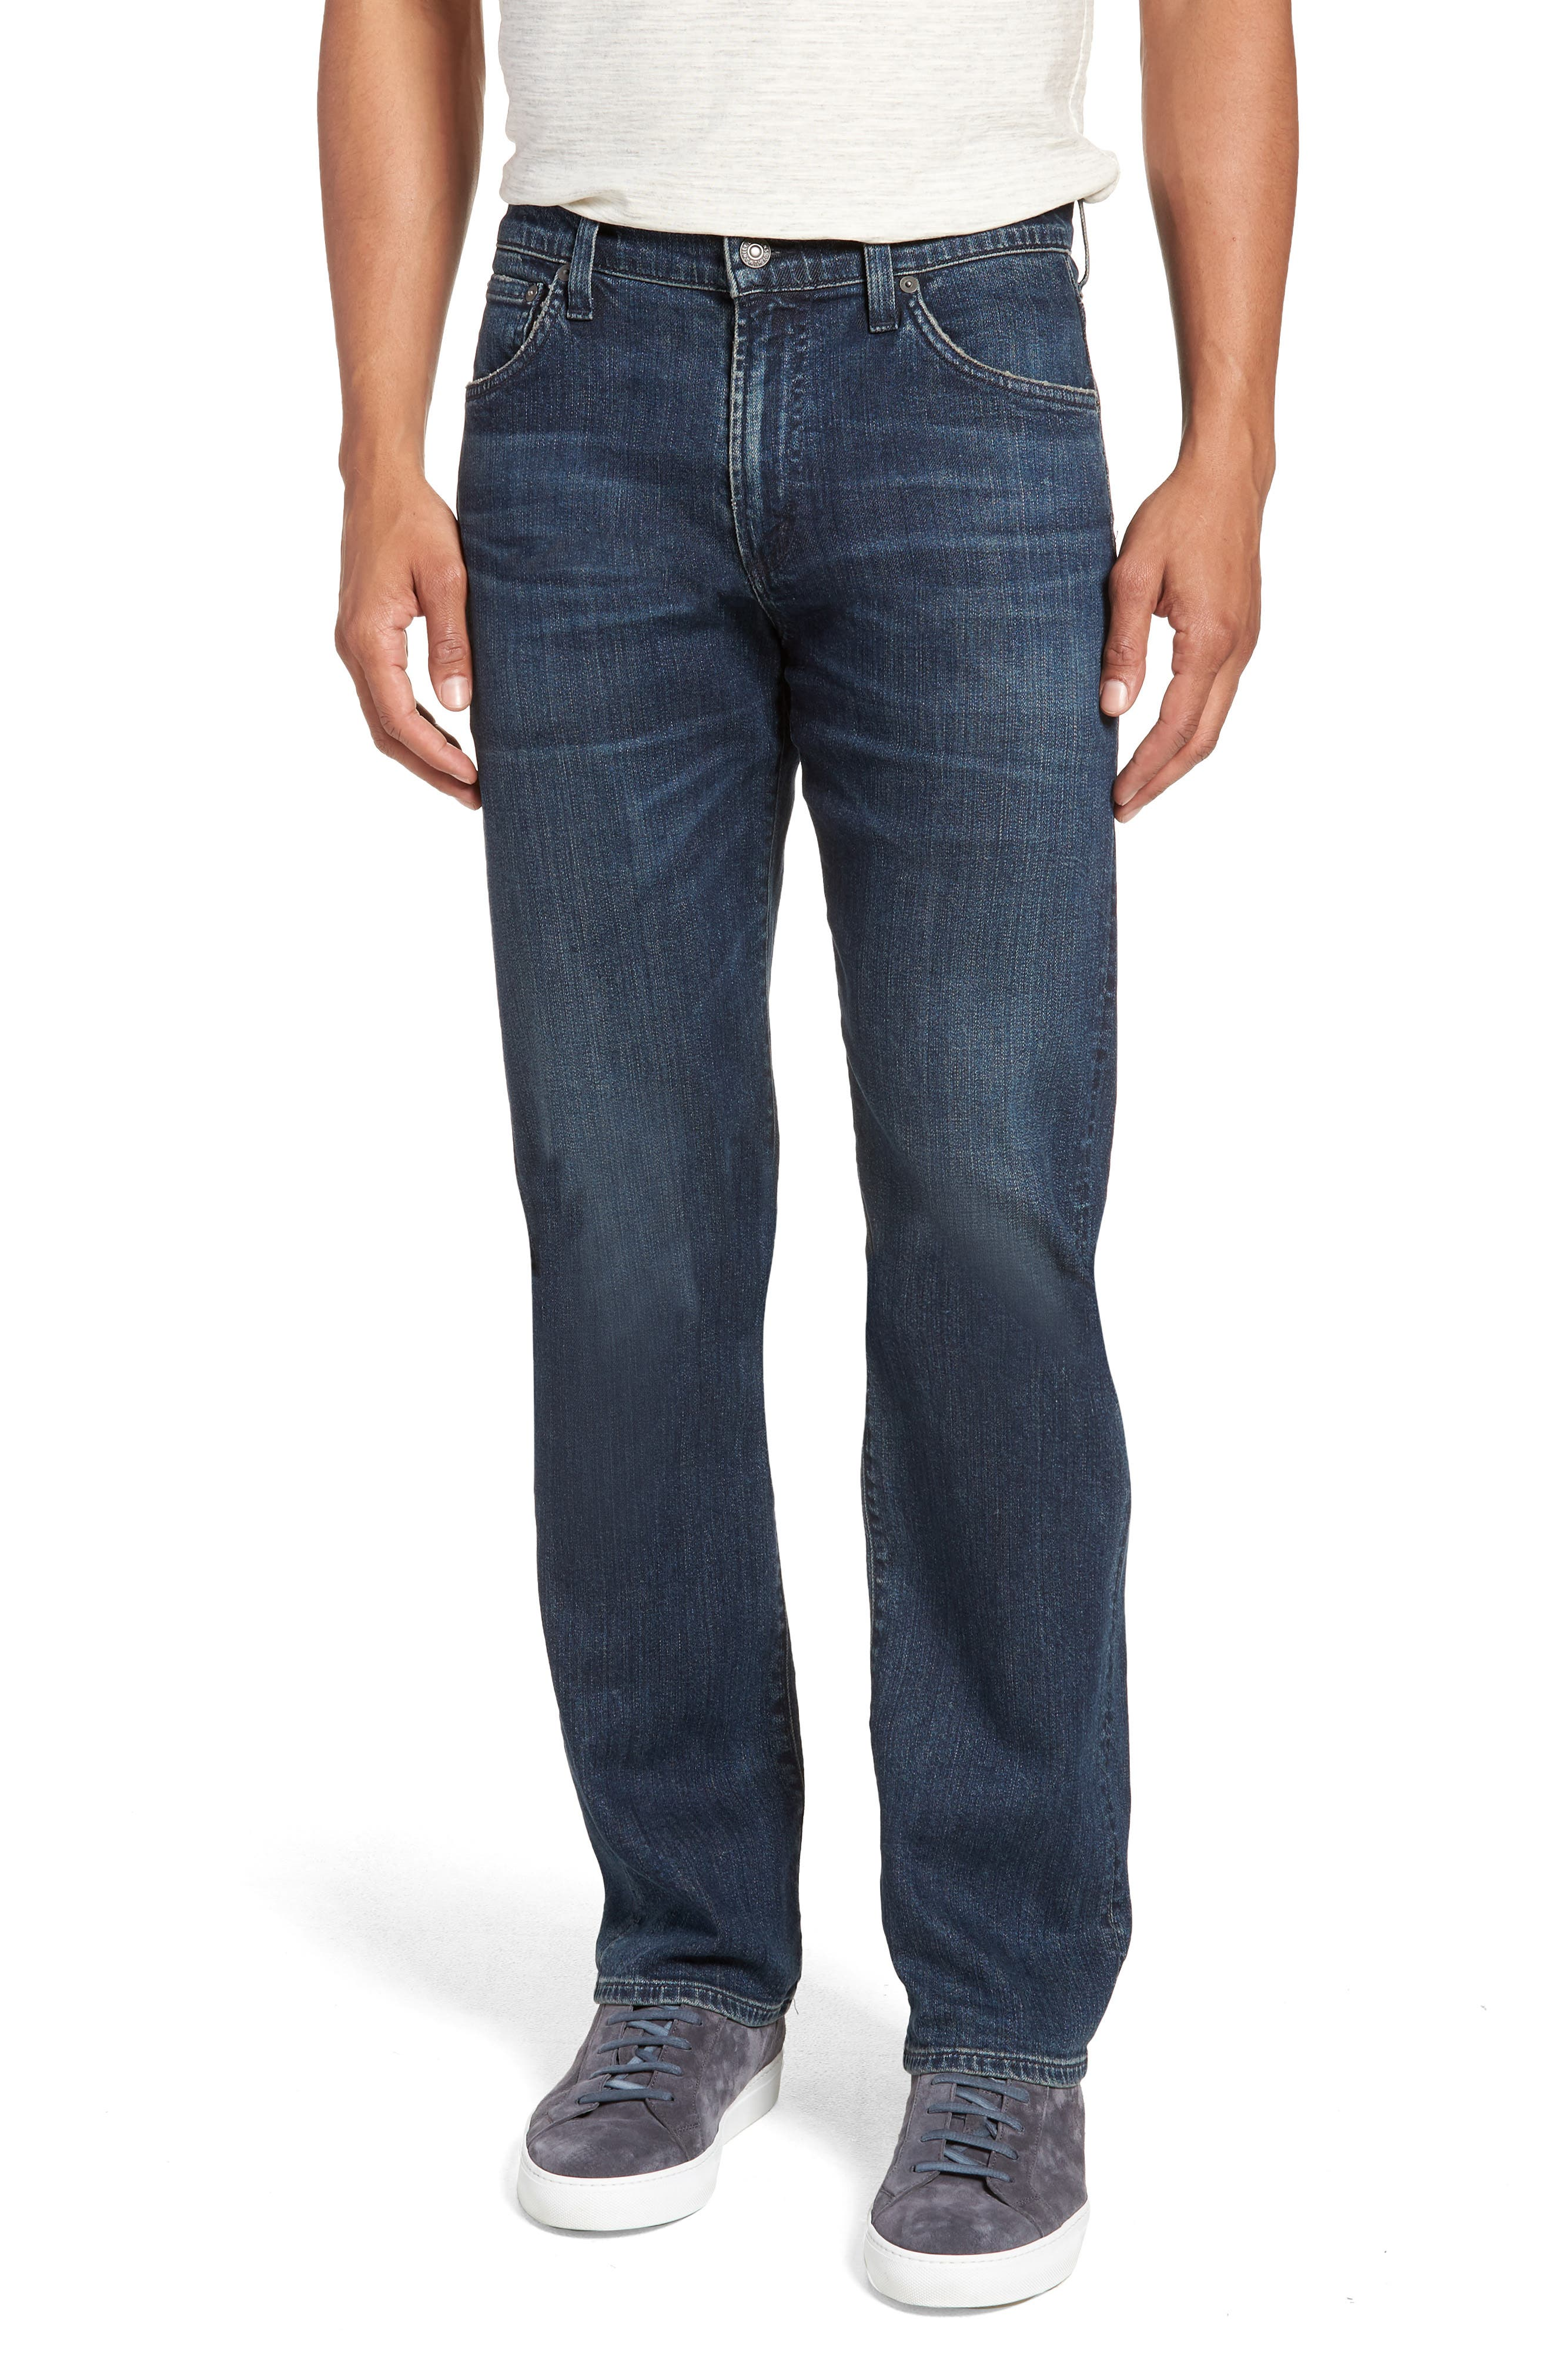 Sid Straight Leg Jeans,                             Main thumbnail 1, color,                             407